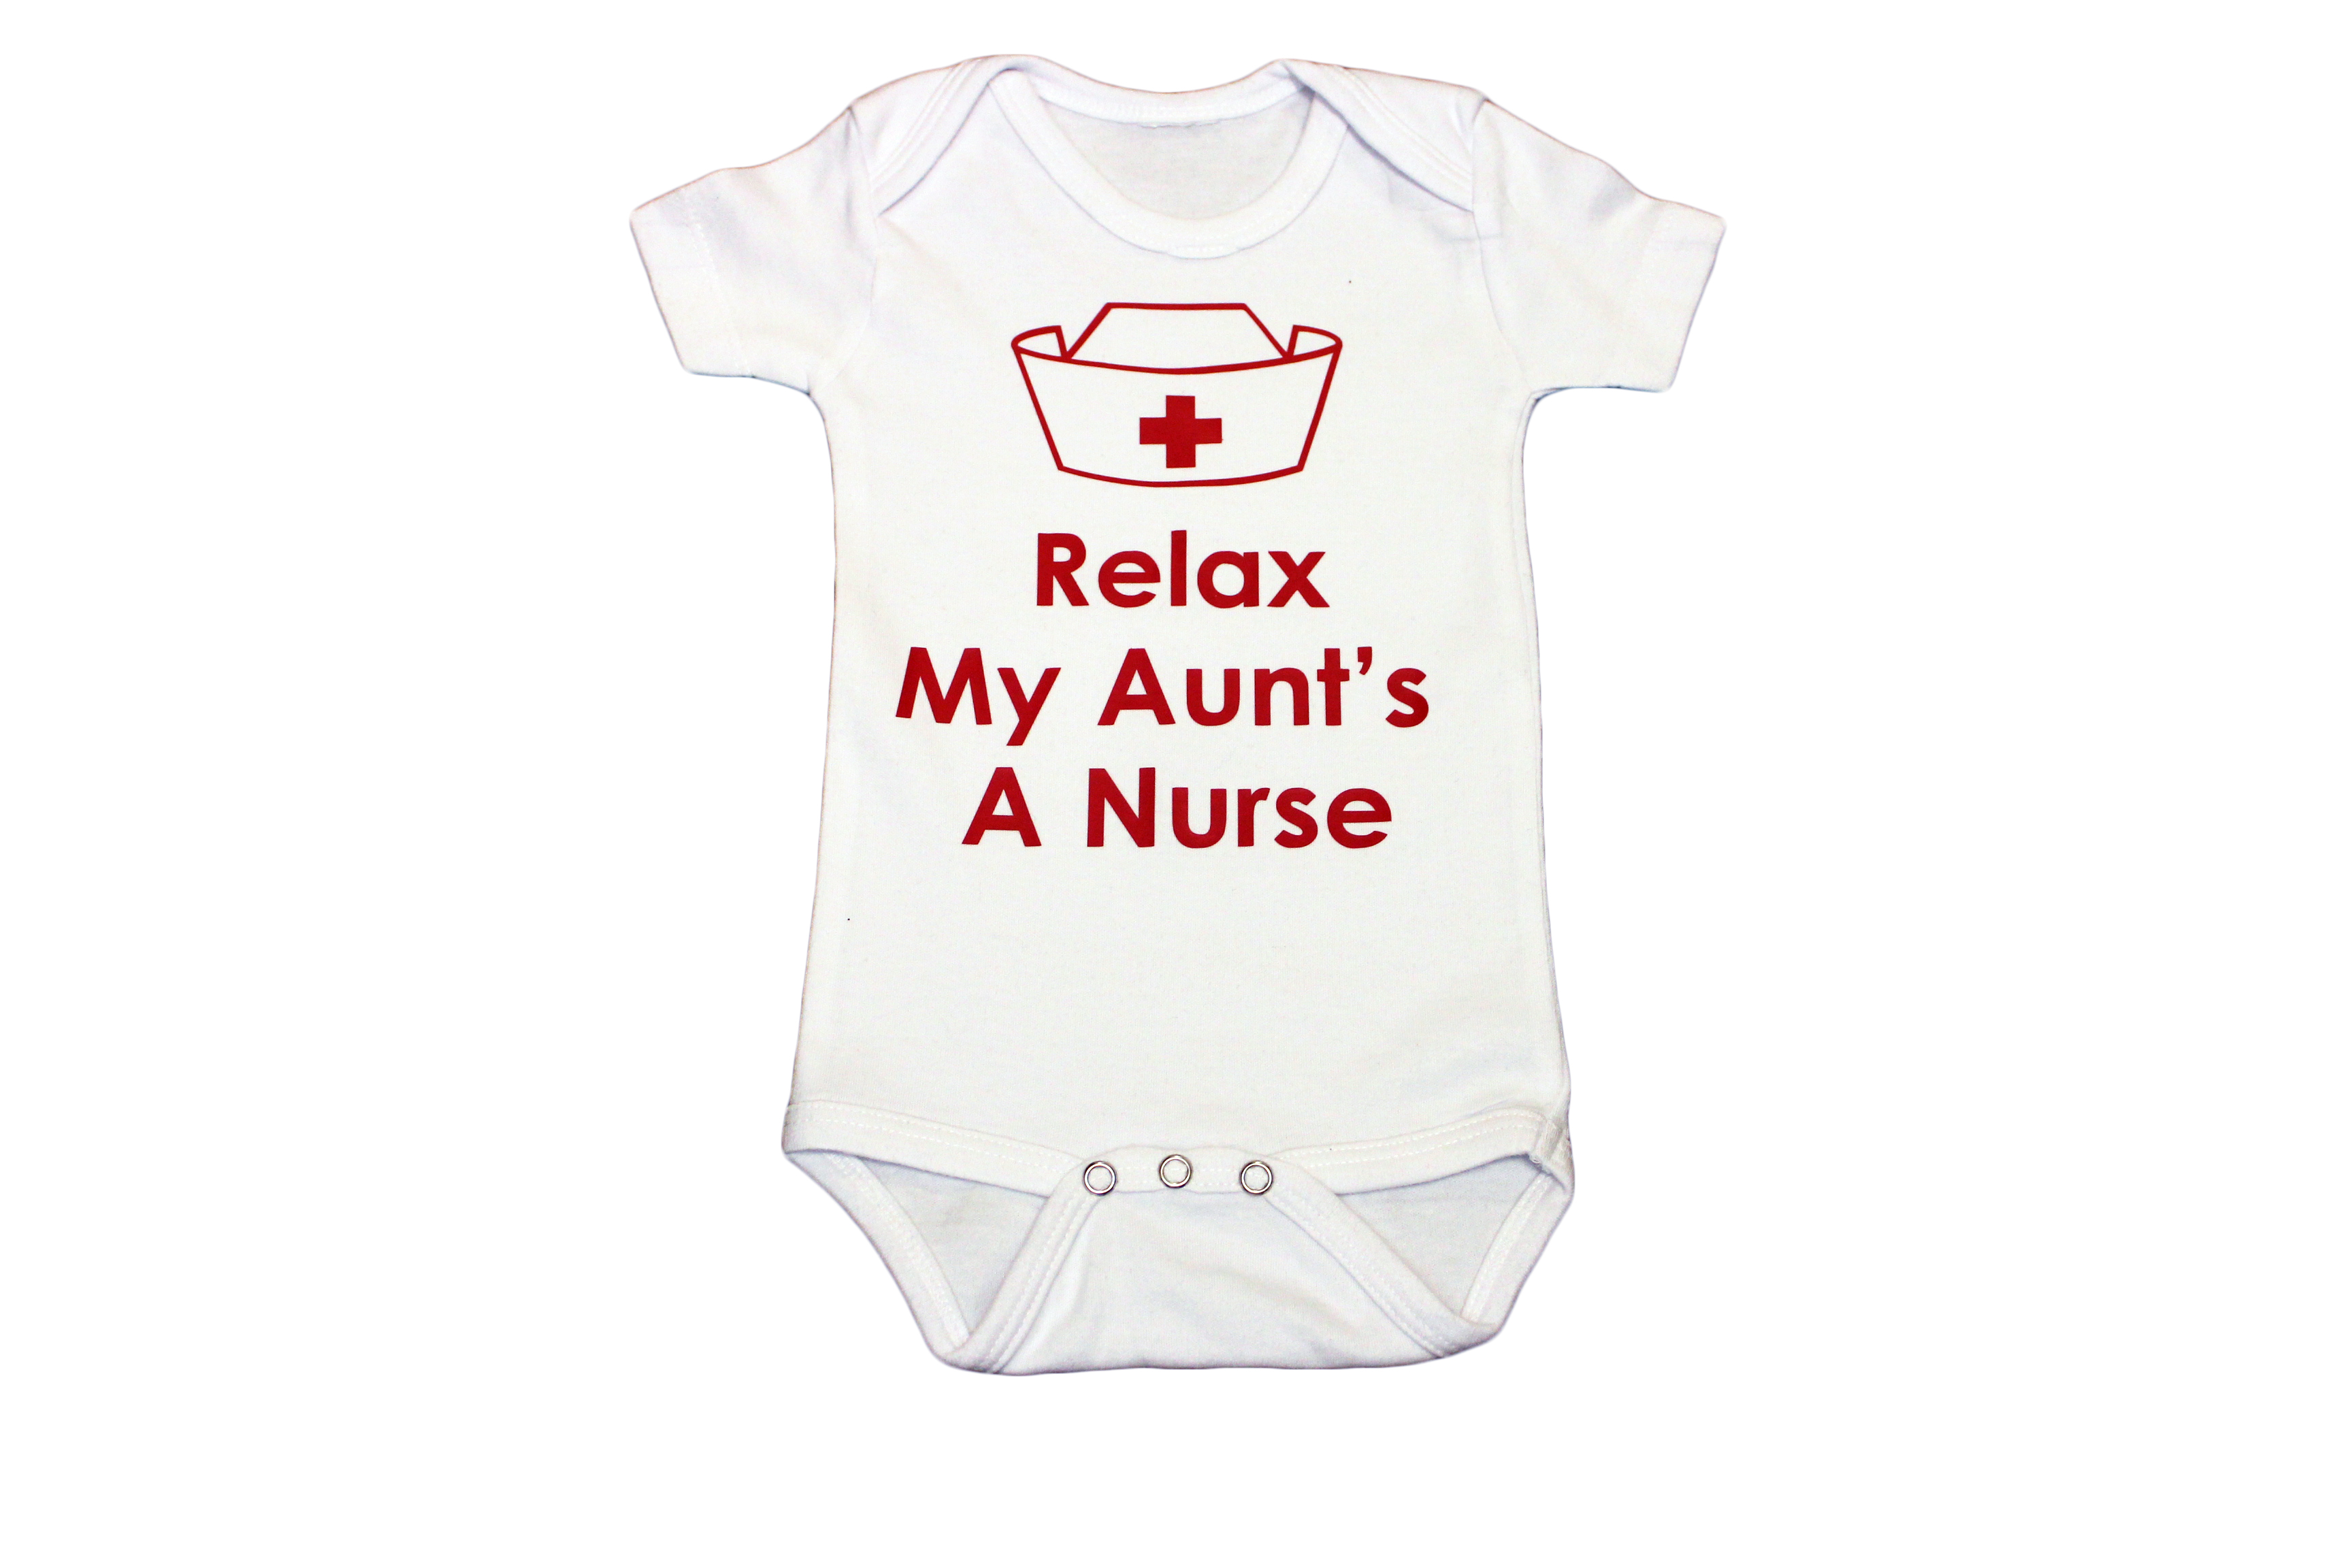 Relax my aunts a nurse baby clothing relax my aunts a nurse baby onesie negle Image collections